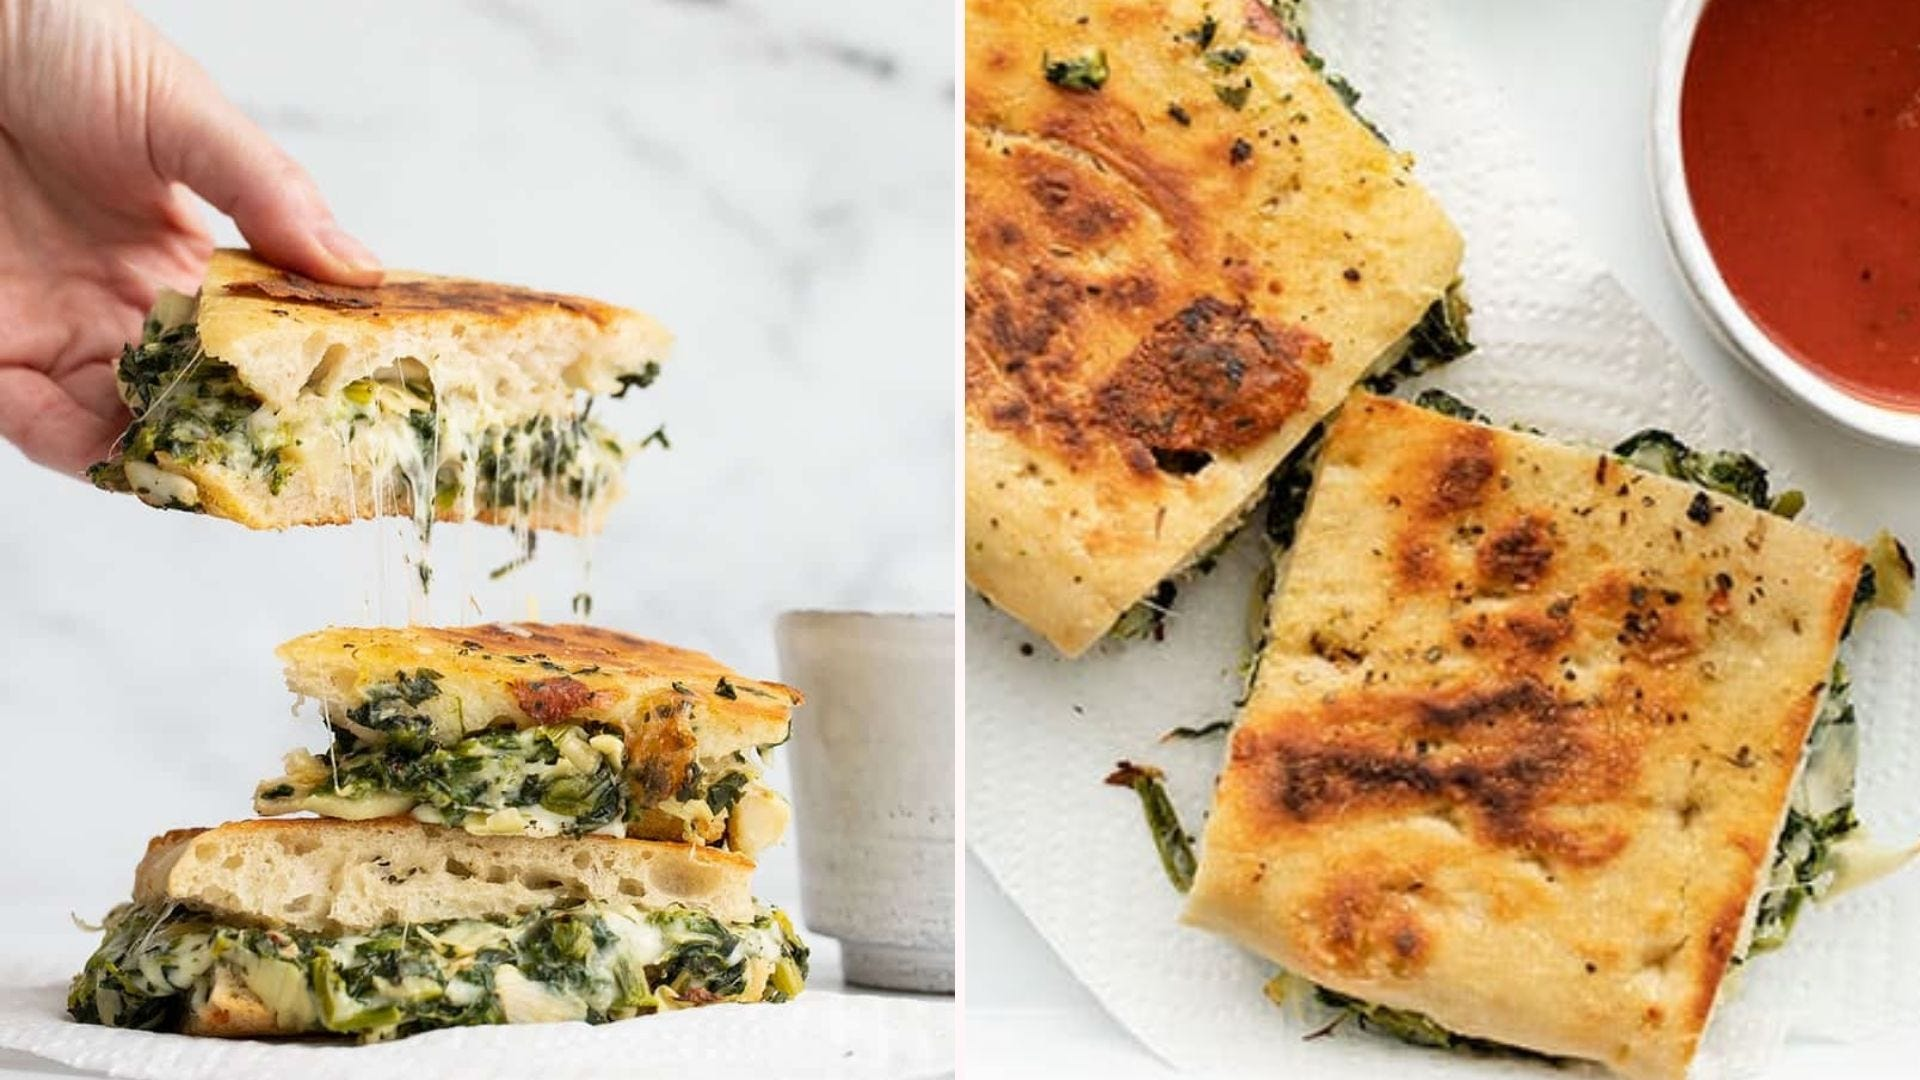 Two side by side images: The left image is someone pulling up a half of a grilled spinach and artichoke sandwich, boasting a gorgeous melty cheese pull, and the right image is of a sandwich sliced in half with a side of marinara.